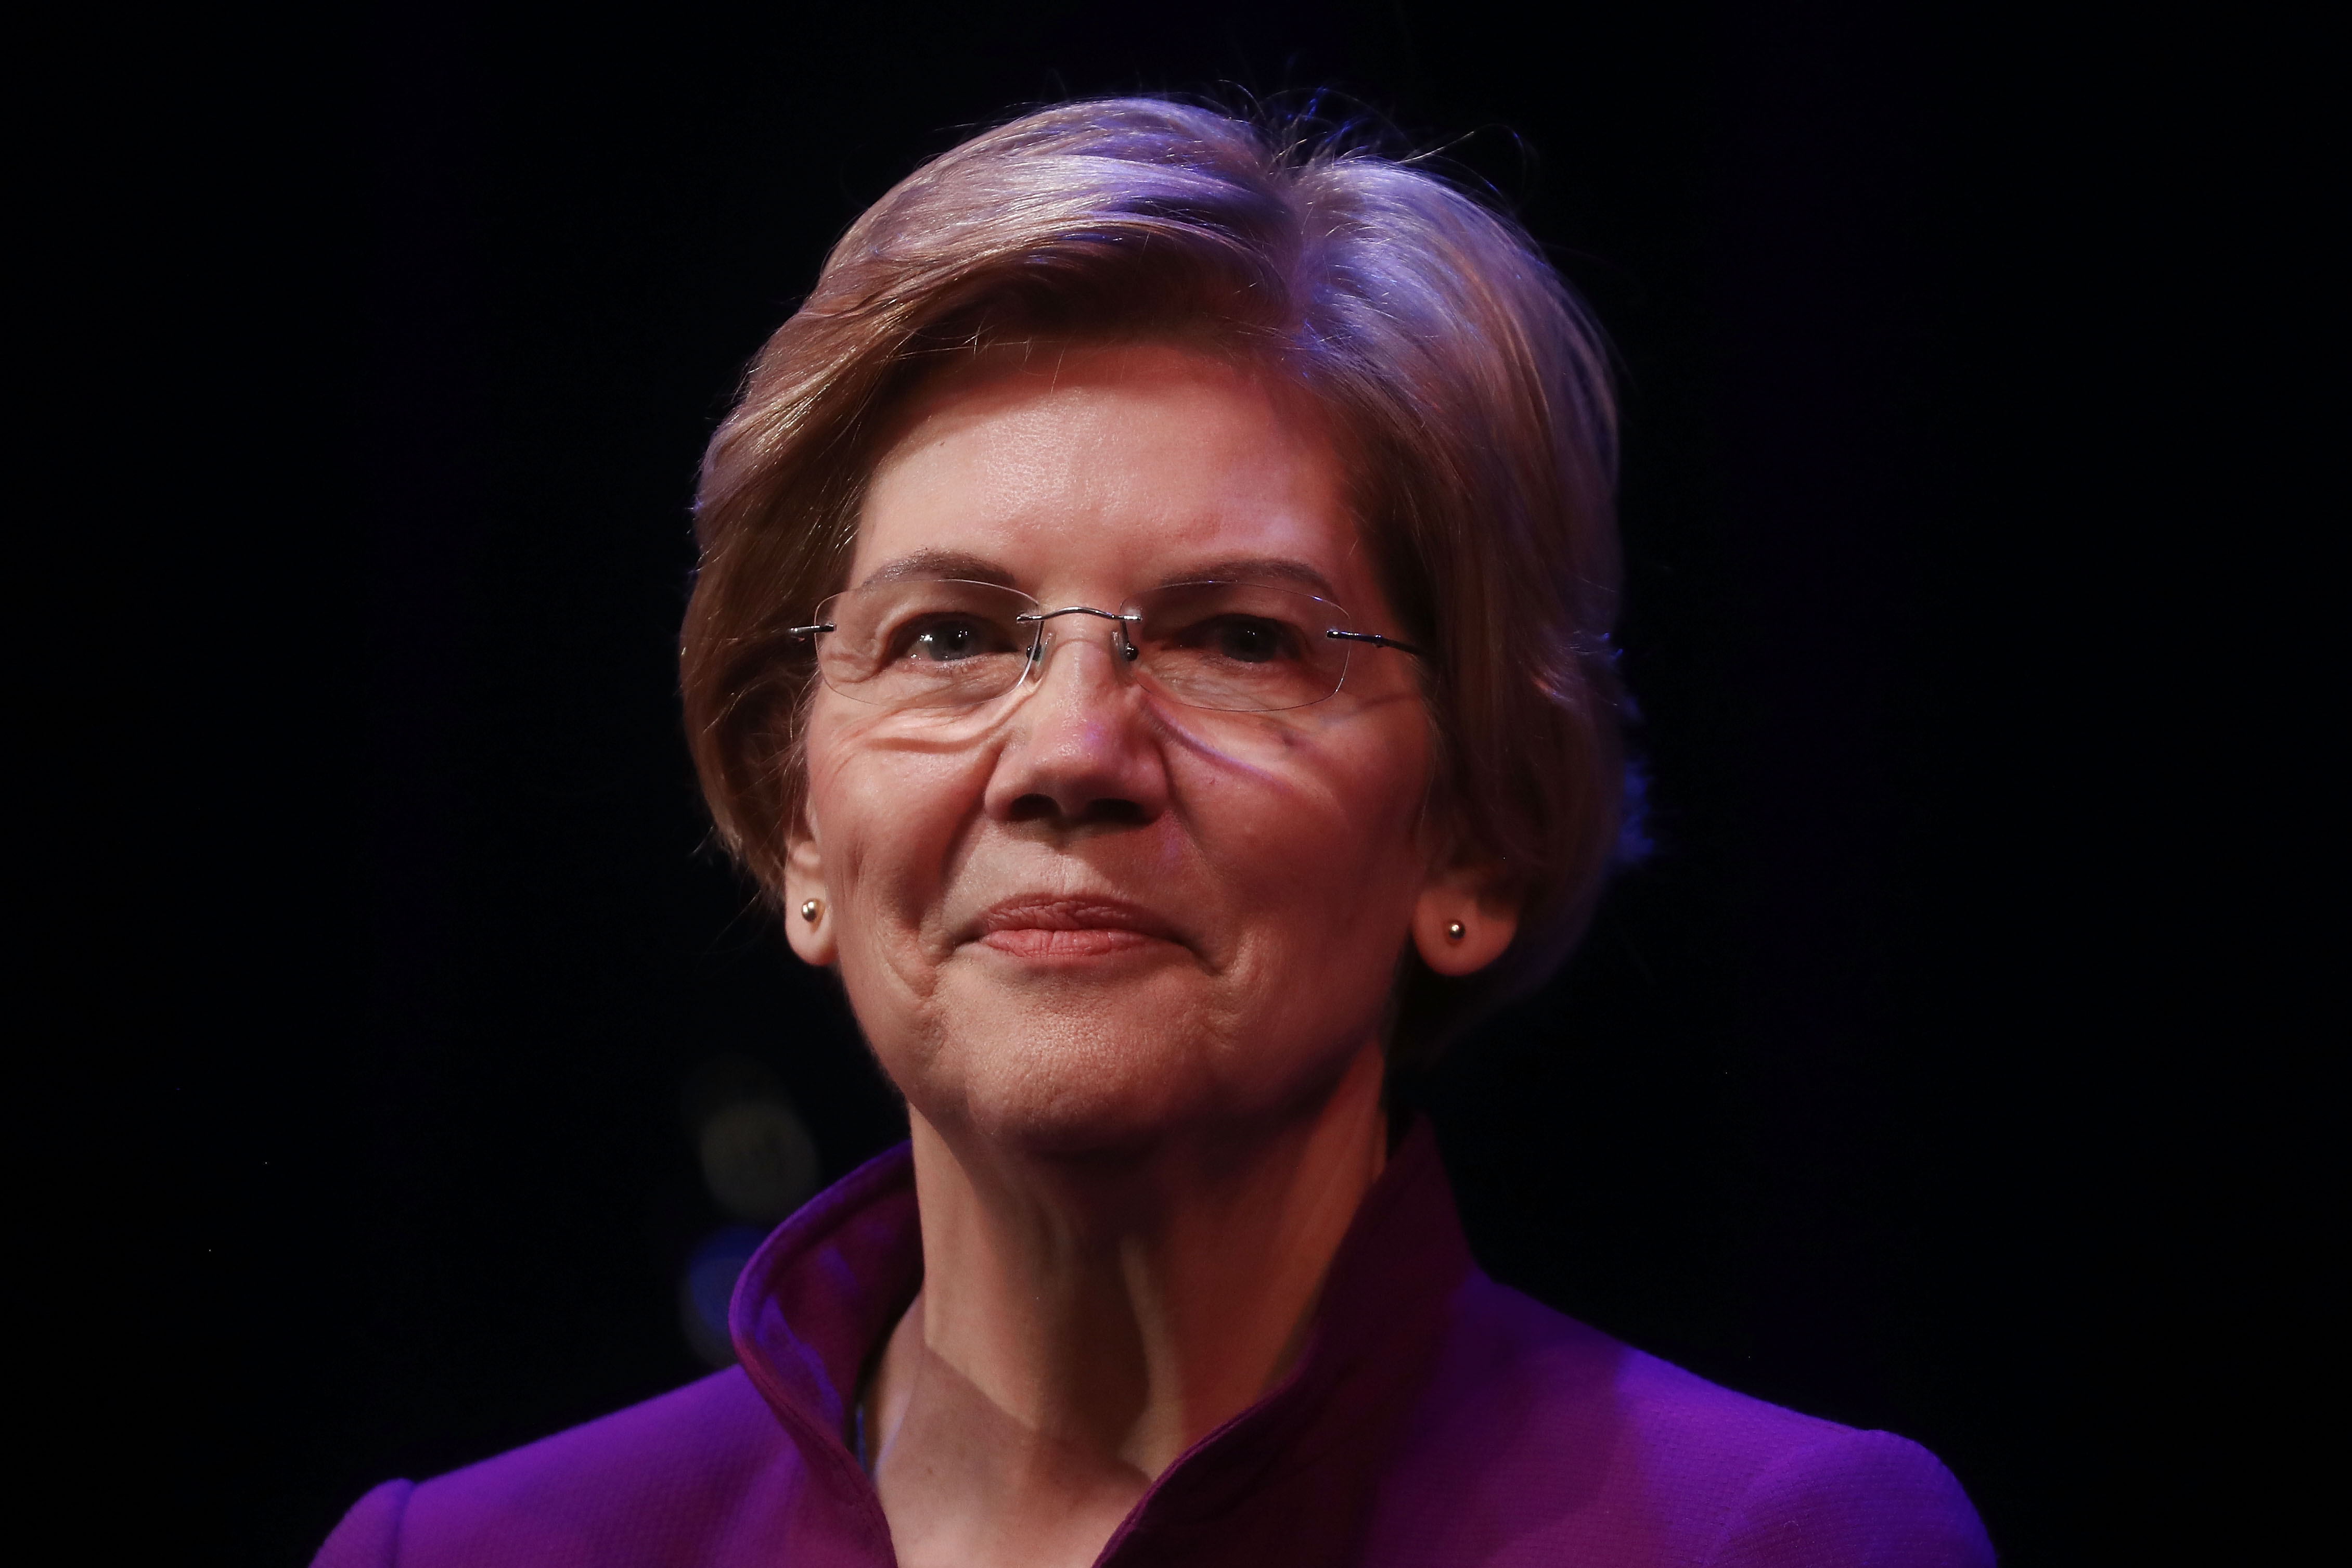 2020 Presidential Hopeful Elizabeth Warren Releases Plan To Wipe Out Student Loan Debt And Make College Free